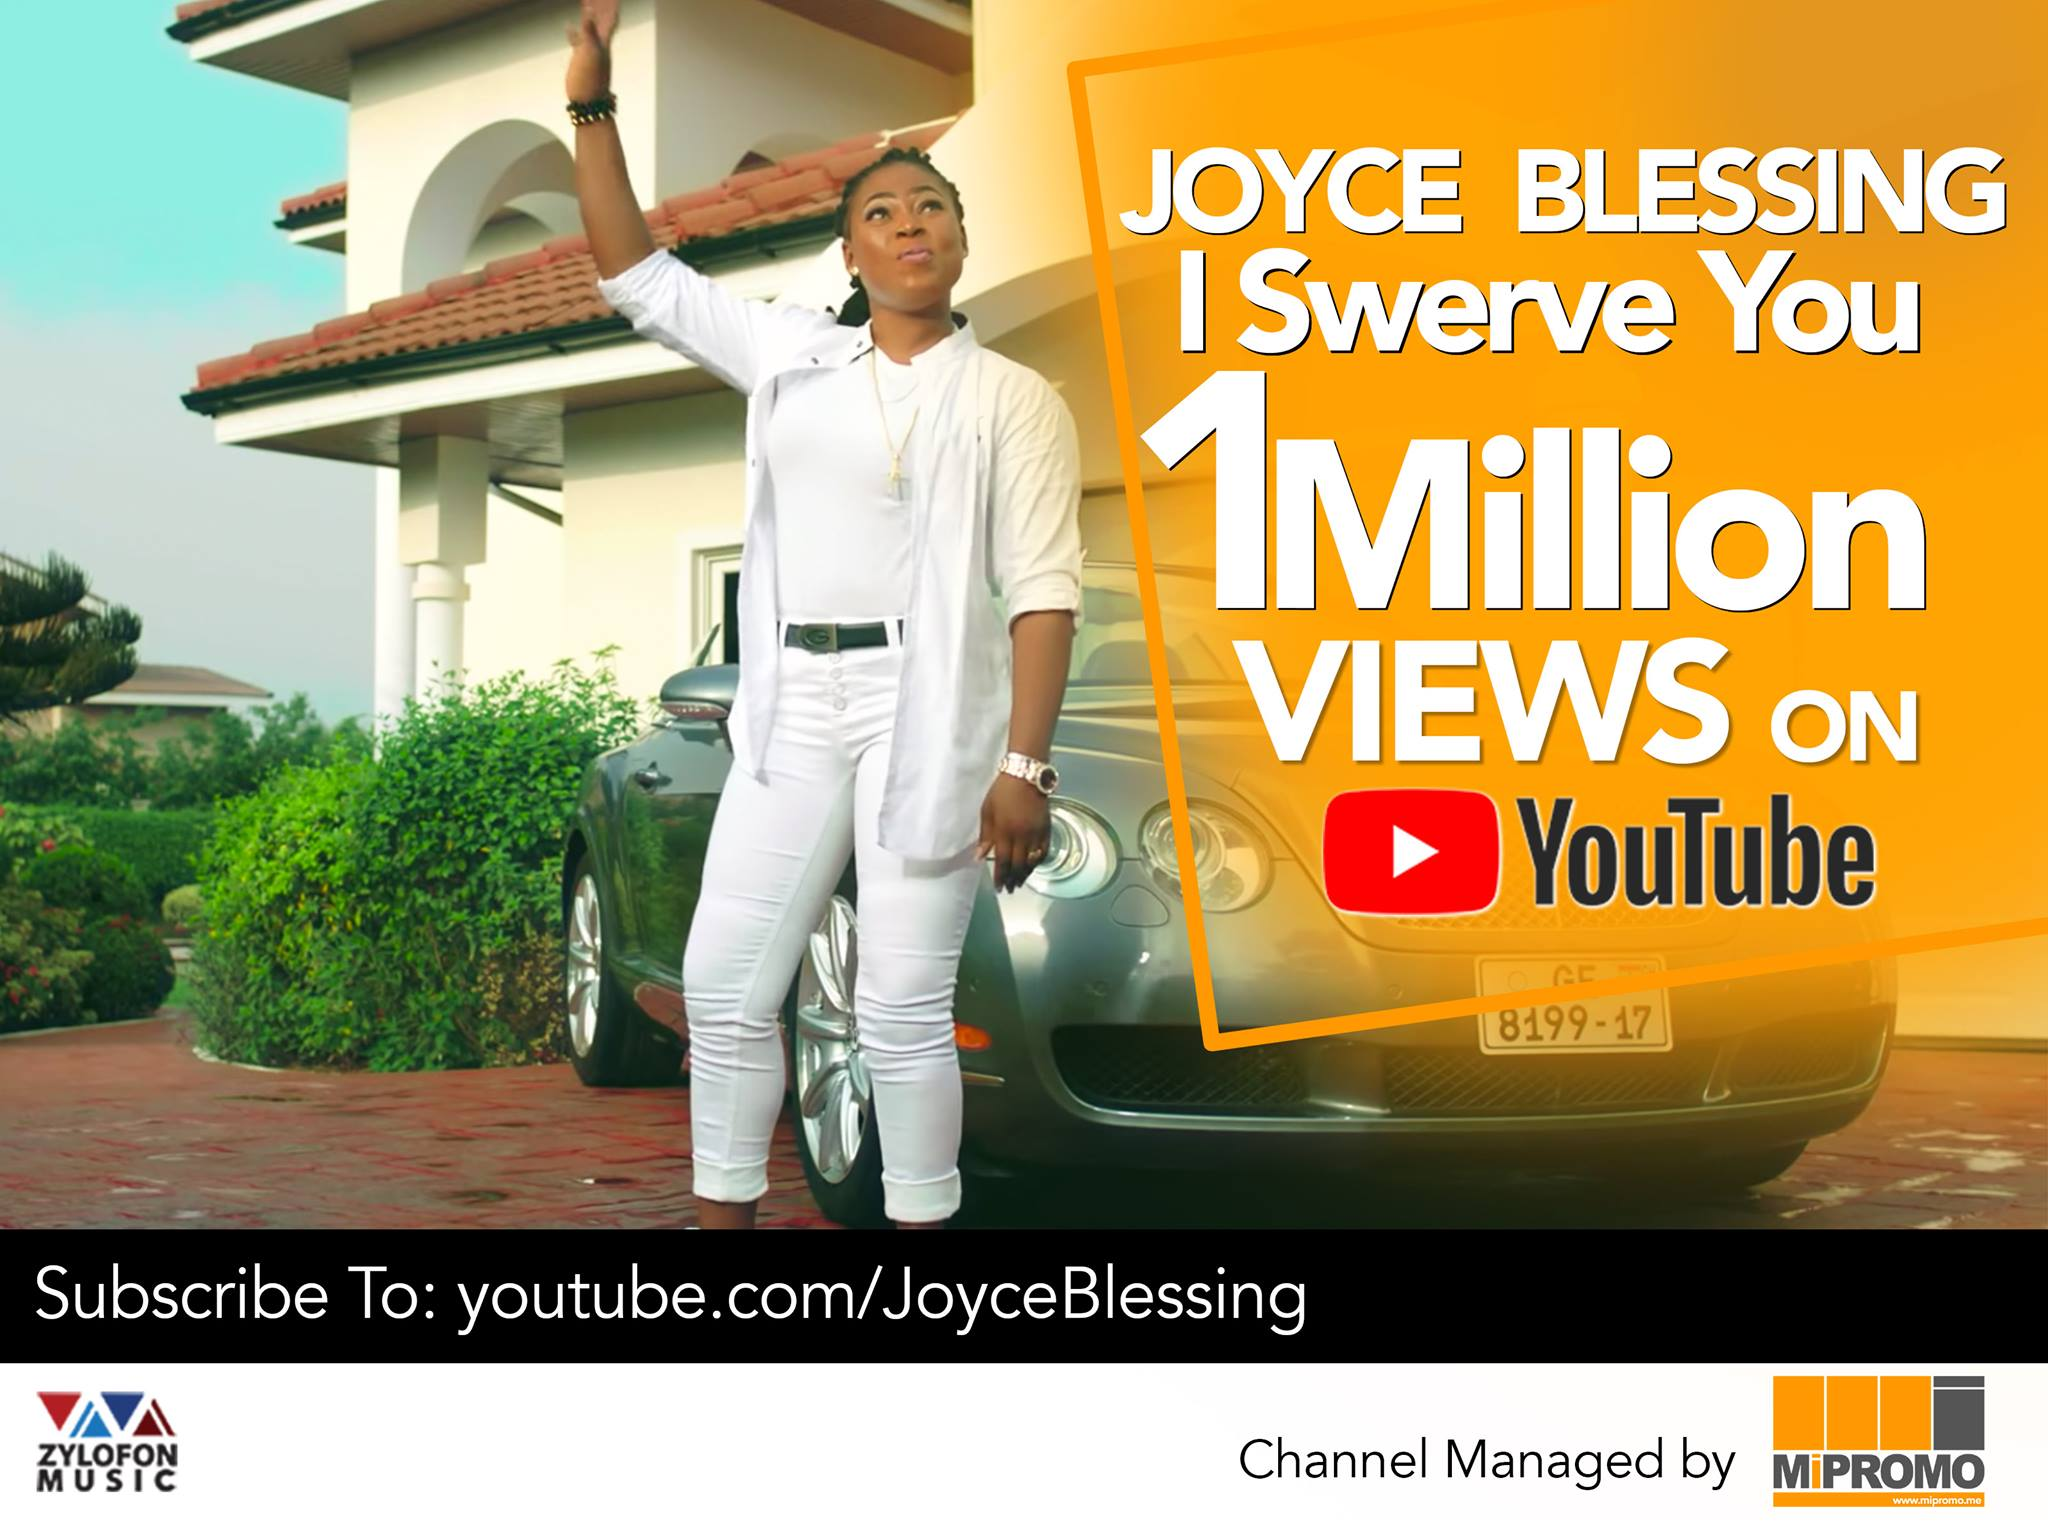 Joyce Blessing's 'I Swerve You' Hits 1Million Views on